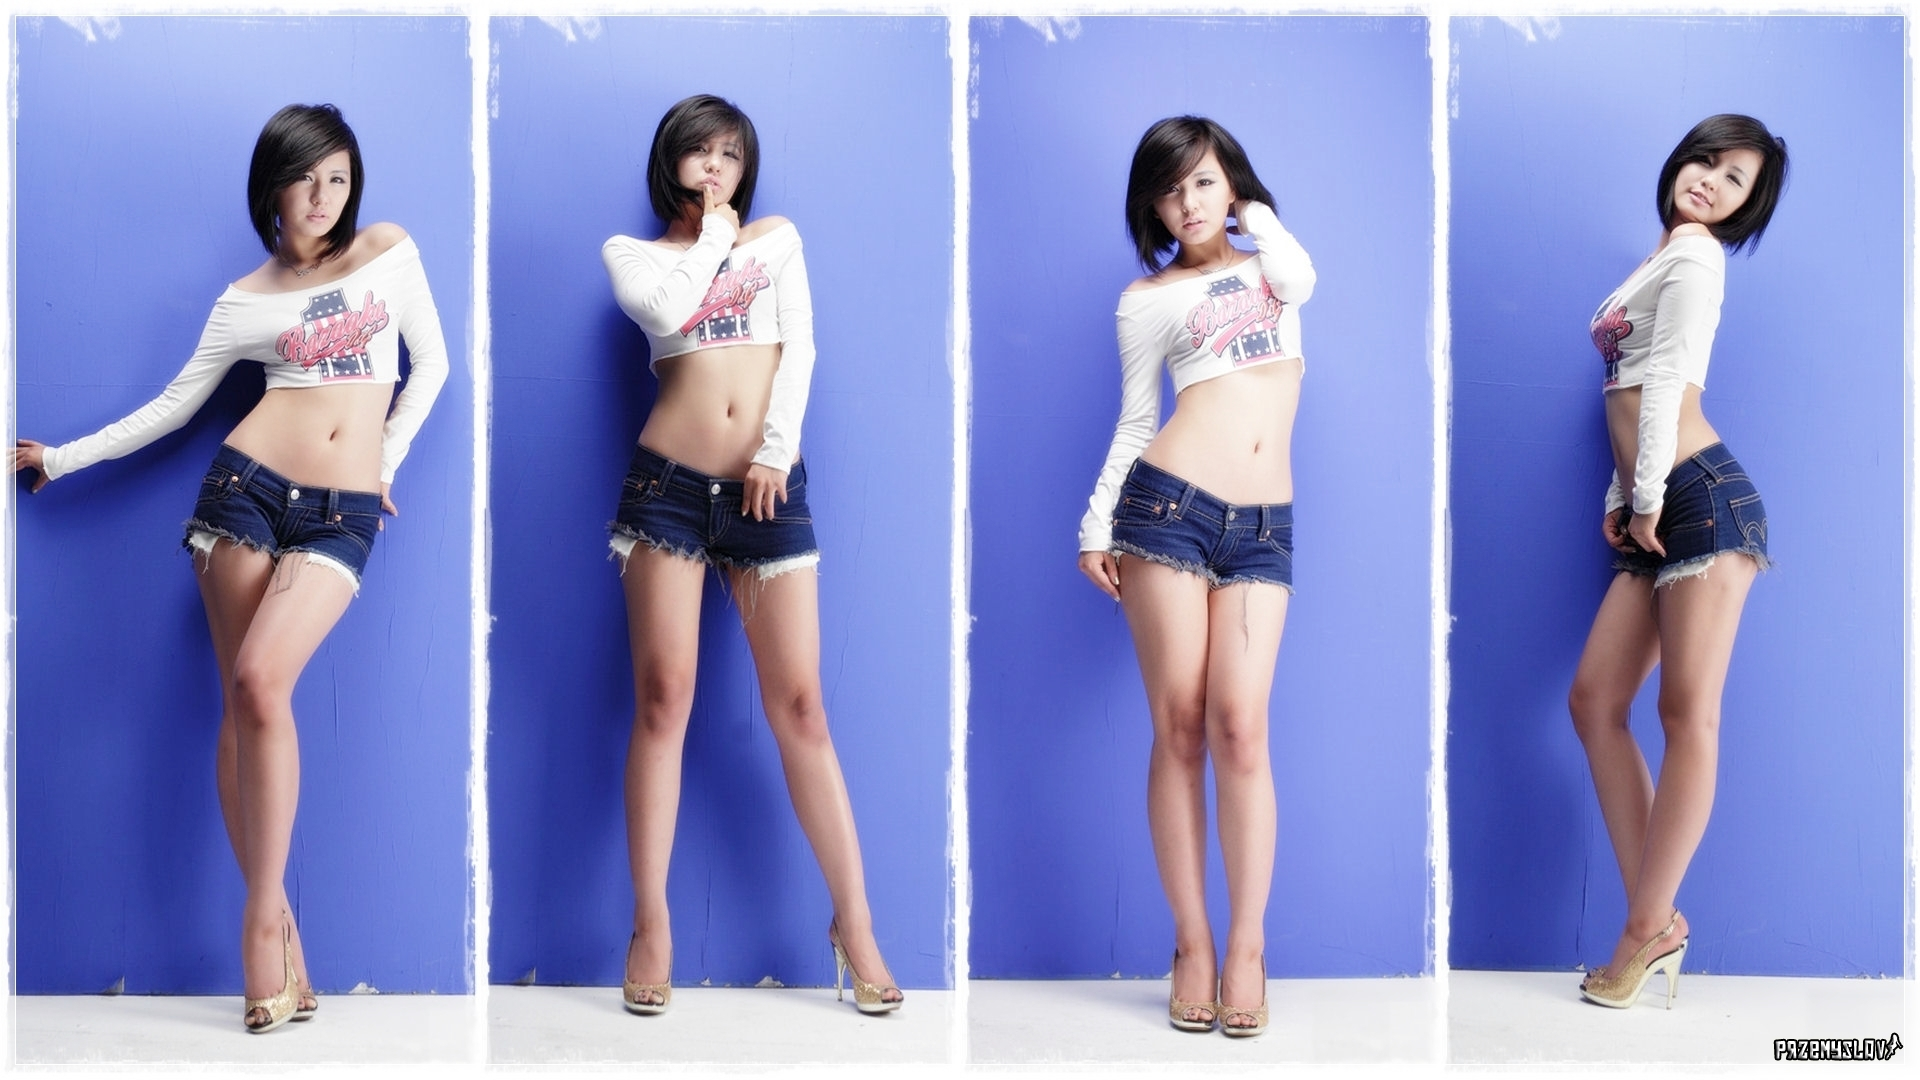 woman jeans asians Ryu HD Wallpaper